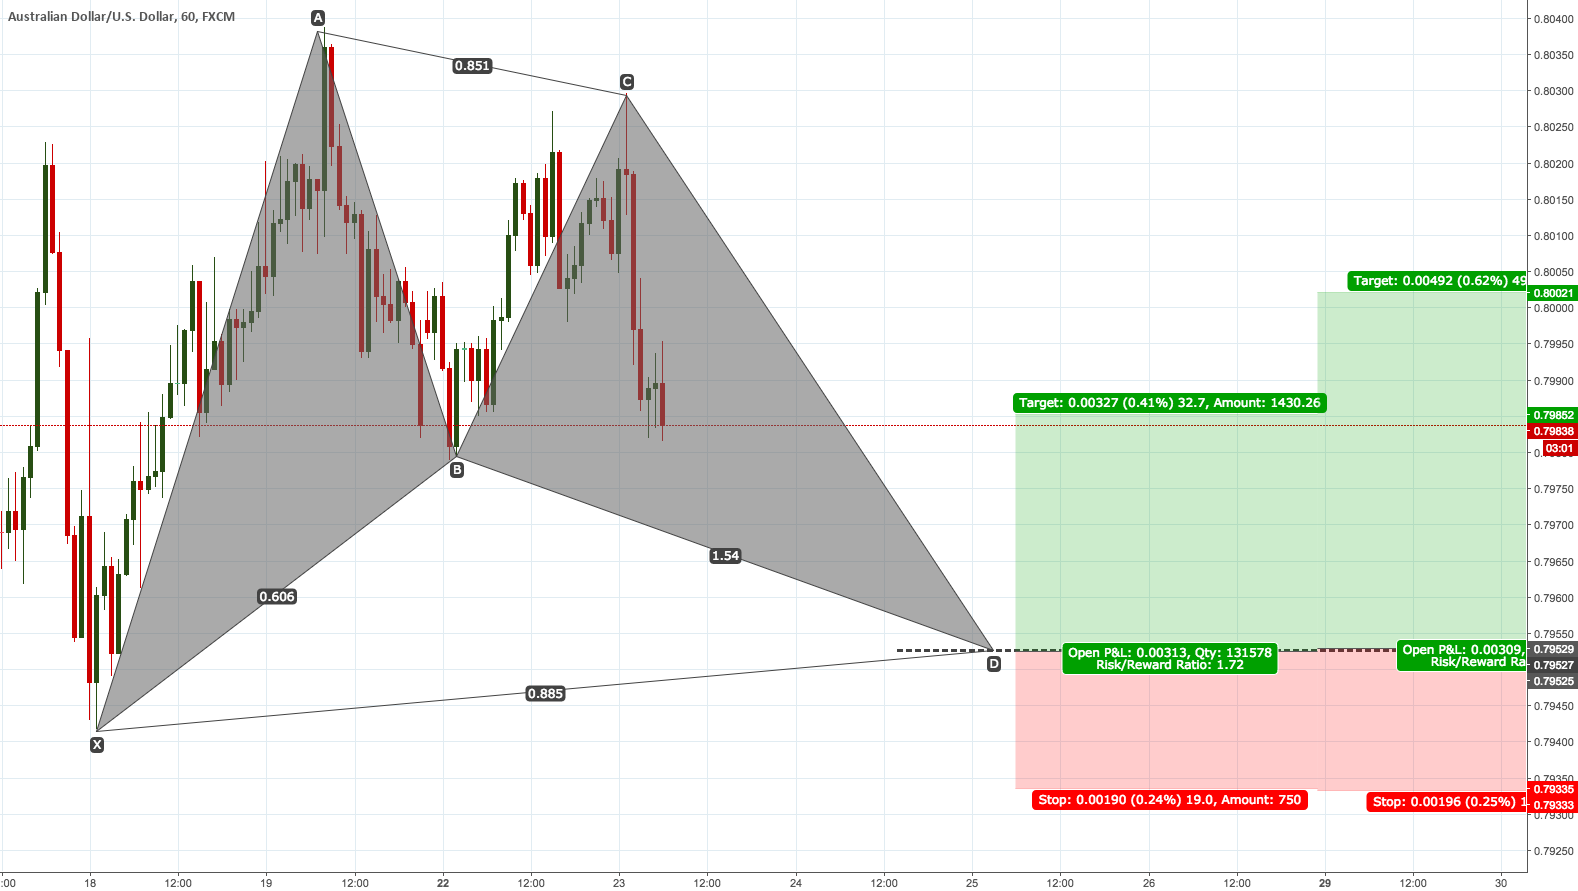 AUDUSD |60| Bullish Bat